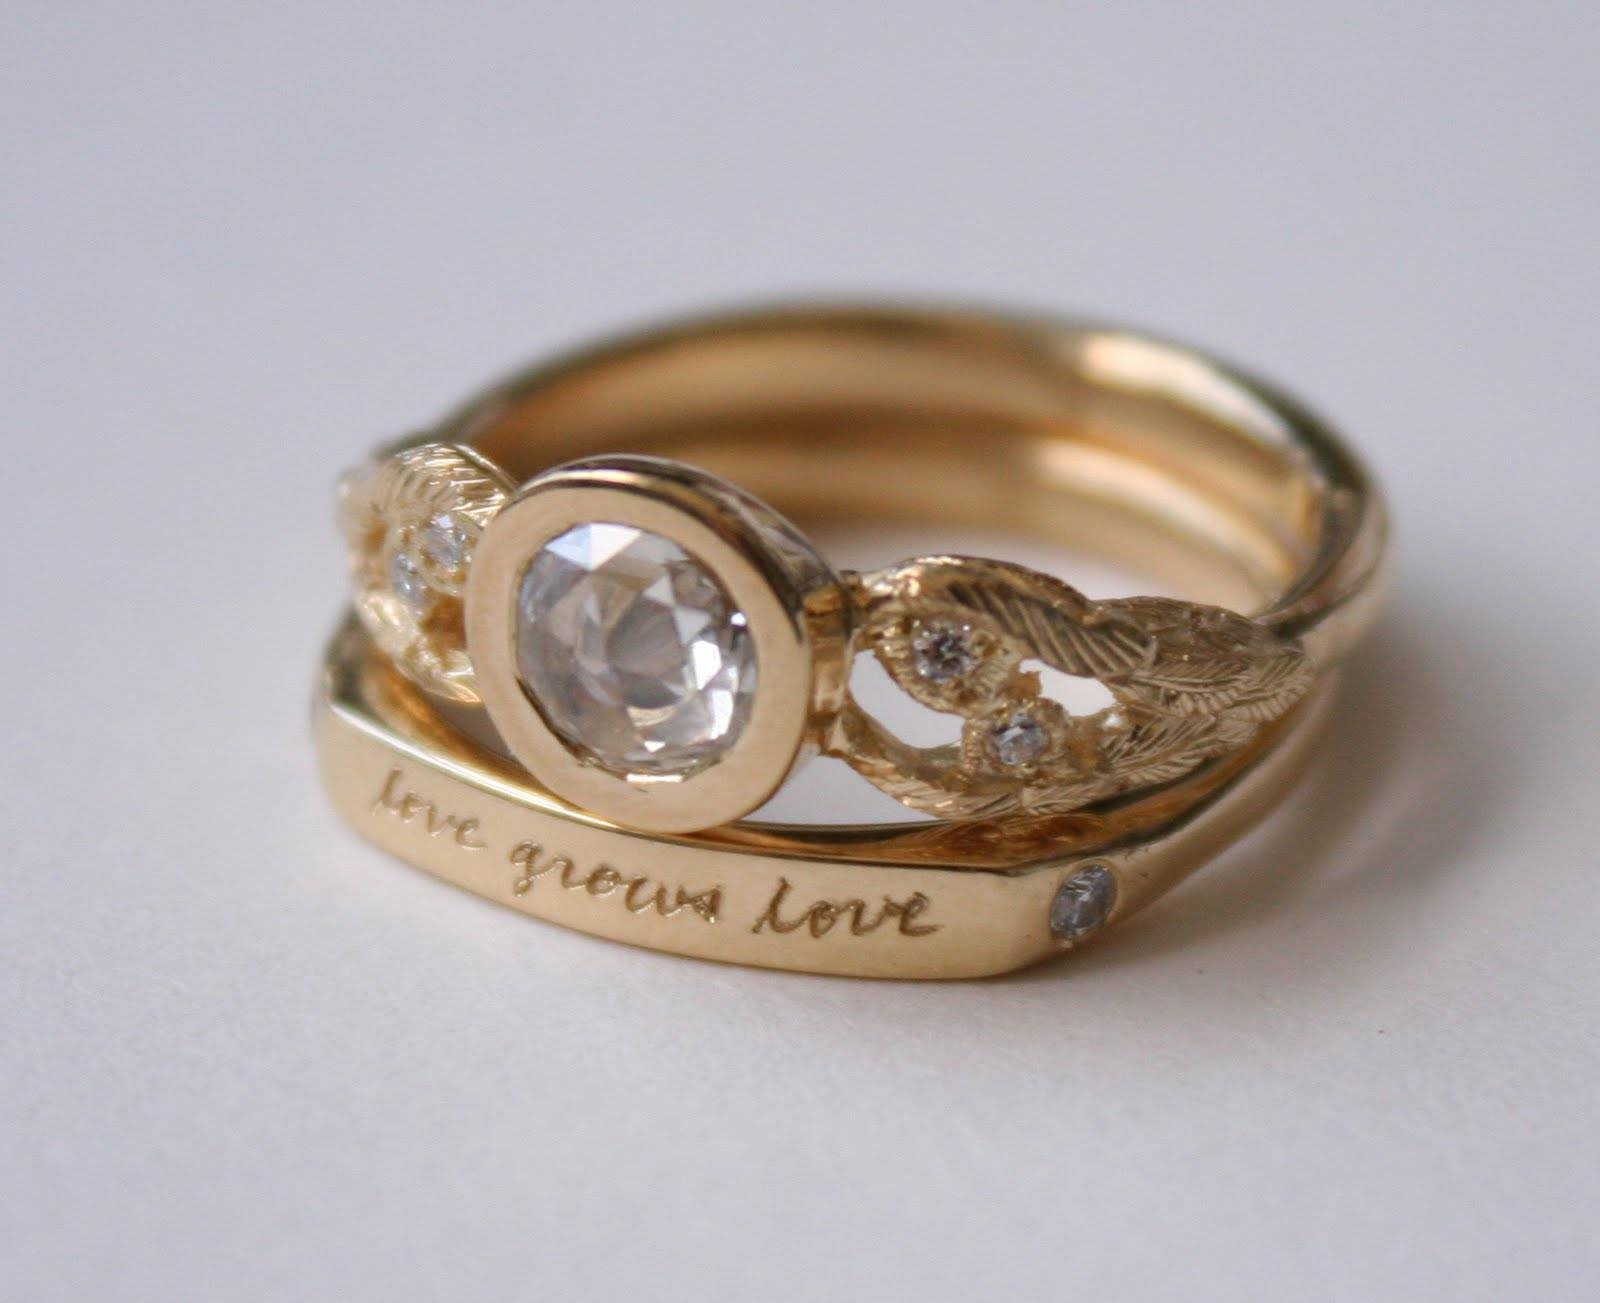 Photo Gallery of Unusual Wedding Rings Designs Viewing 3 of 15 Photos